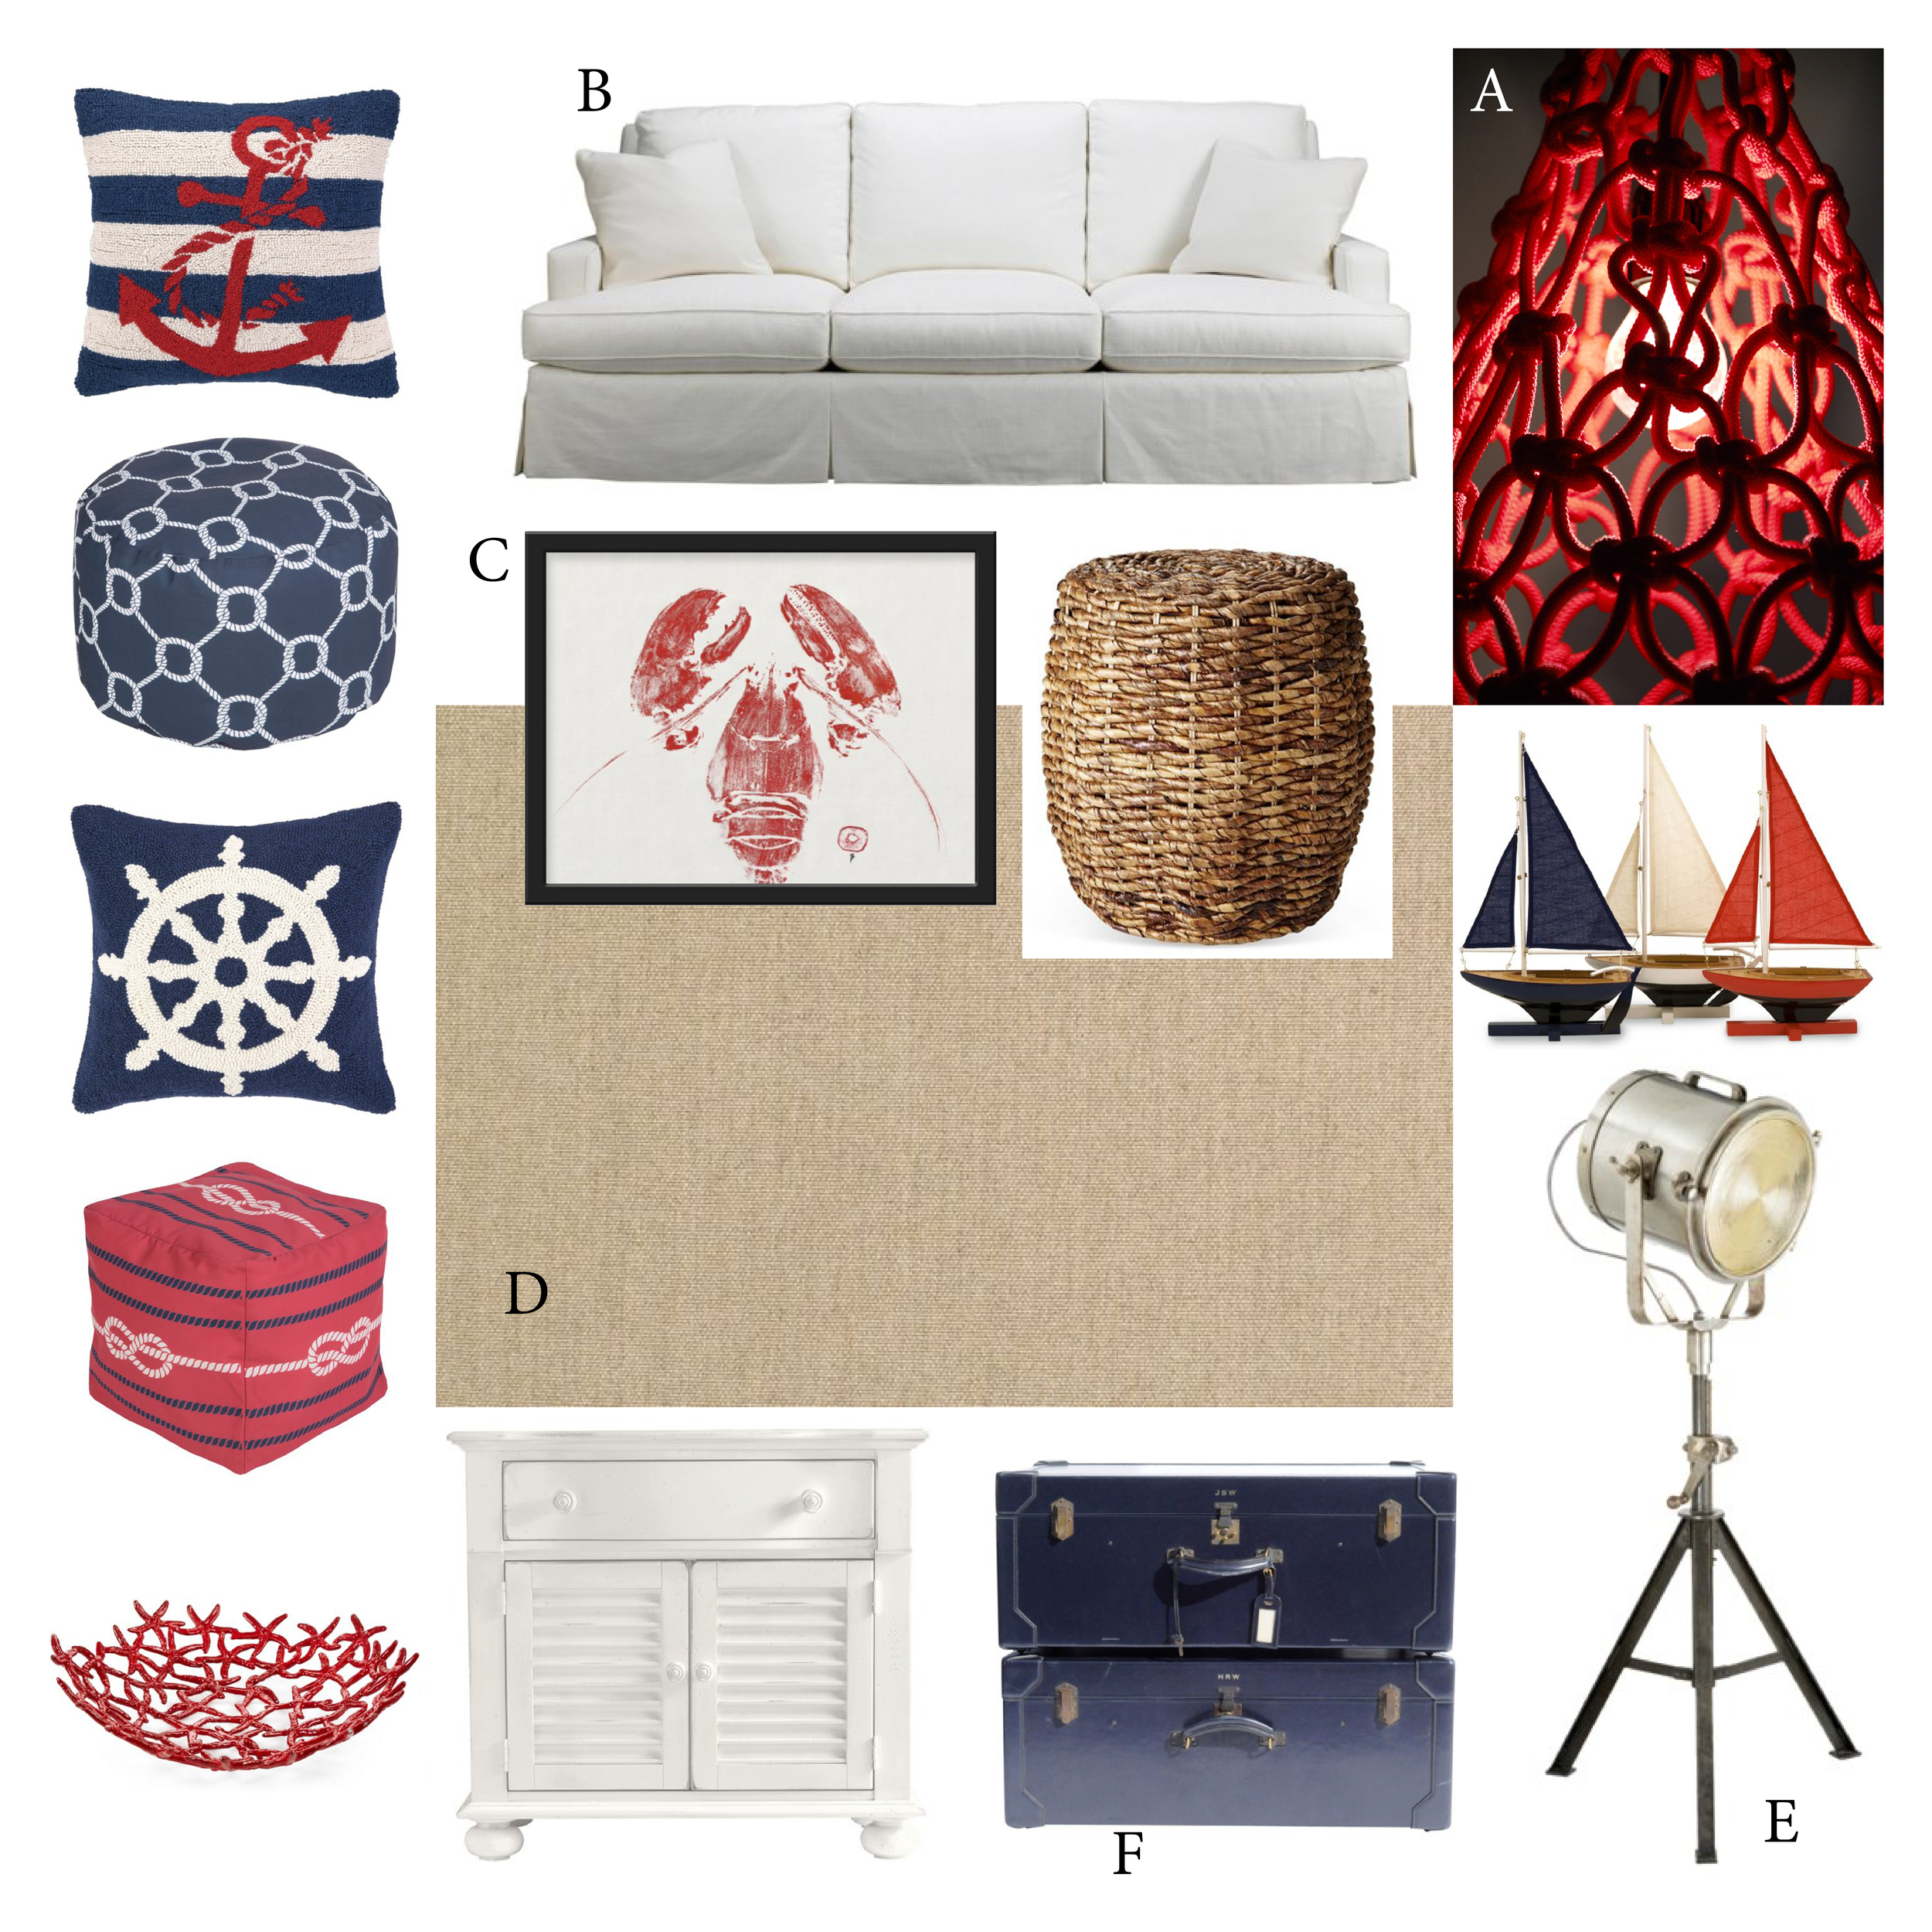 A:  Weaver Pendant Light by  Satelight  ; B: Sofa by Mr. & Mrs. Howard for  Sherrill Furniture ; C: Lobster Print by  East End Fish Prints ; D: Flat-woven Sisal Rug by  Stark Carpet ; E:  Visual Comfort  Floor Lamp; F: Vintage Hermes Trunks